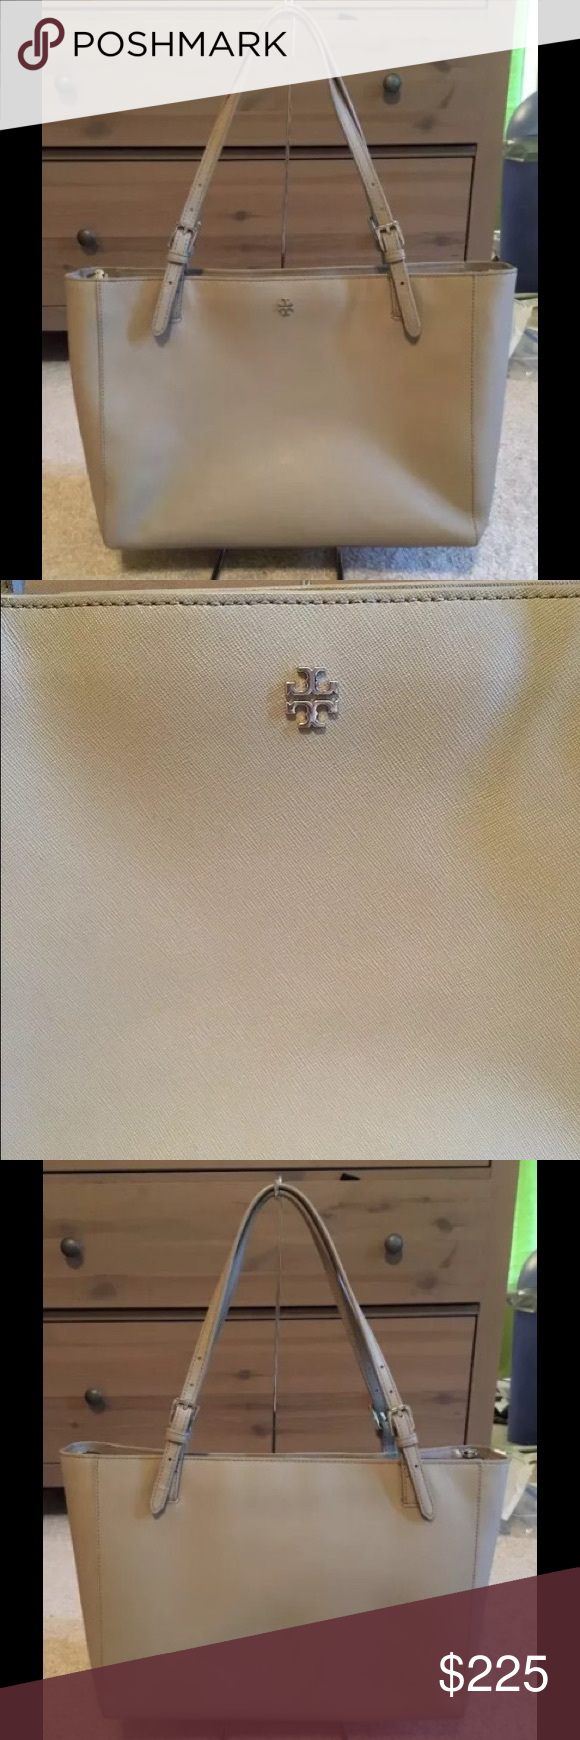 Tory Burch Large French Gray York Buckle Tote 595 My Posh Picks Typical Light Wear No Serious Flaws